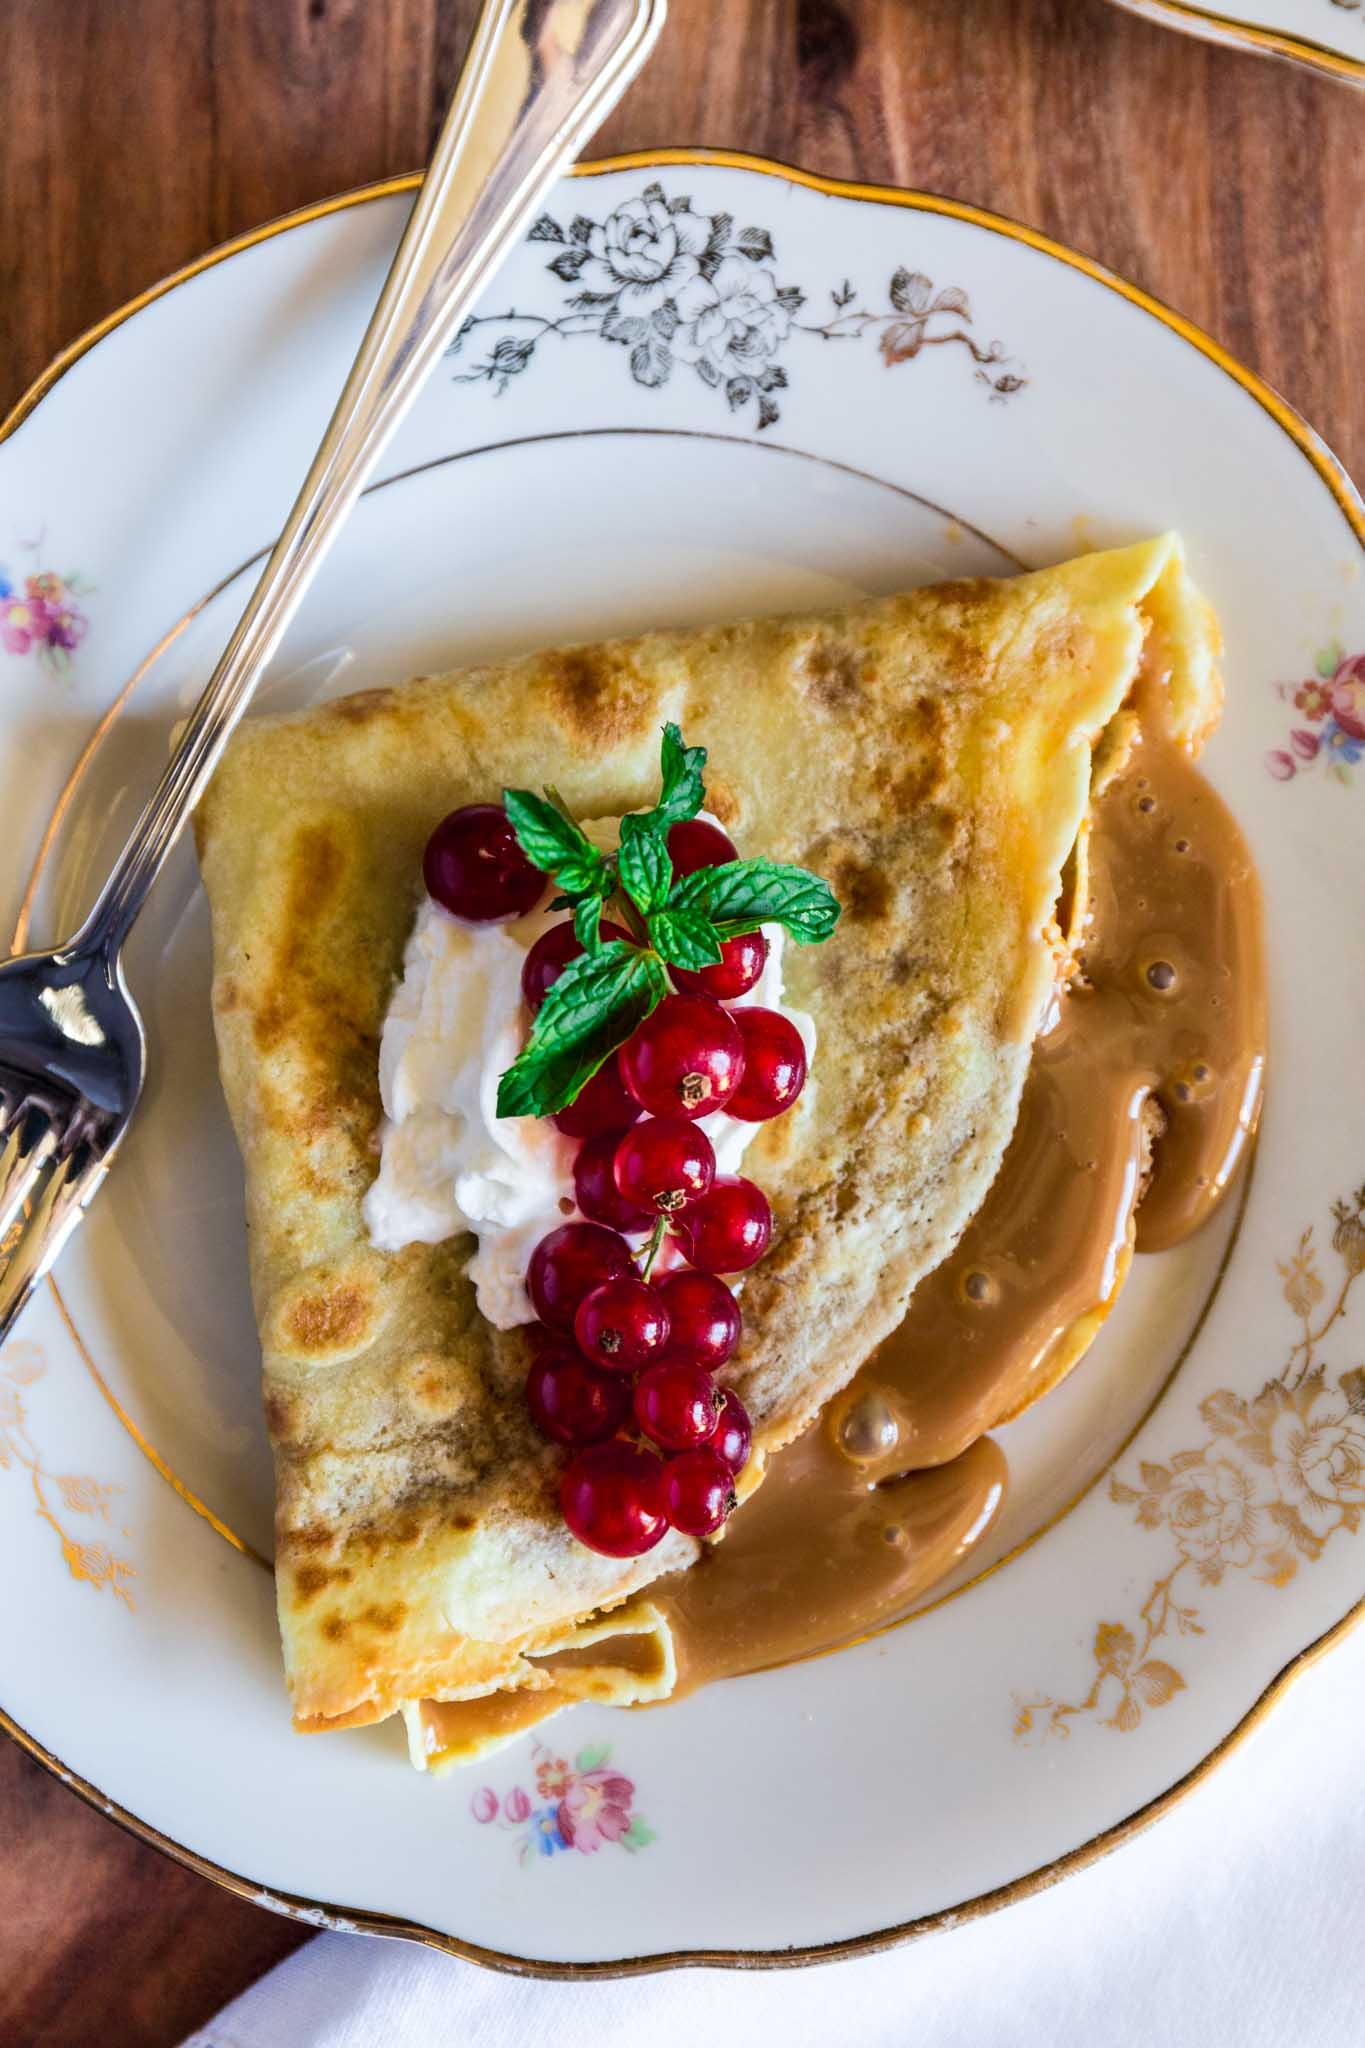 Dulce de Leche Crepes | www.oliviascuisine.com | A simple and easy Argentinian dessert, made even quicker when you use store bought dulce de leche.